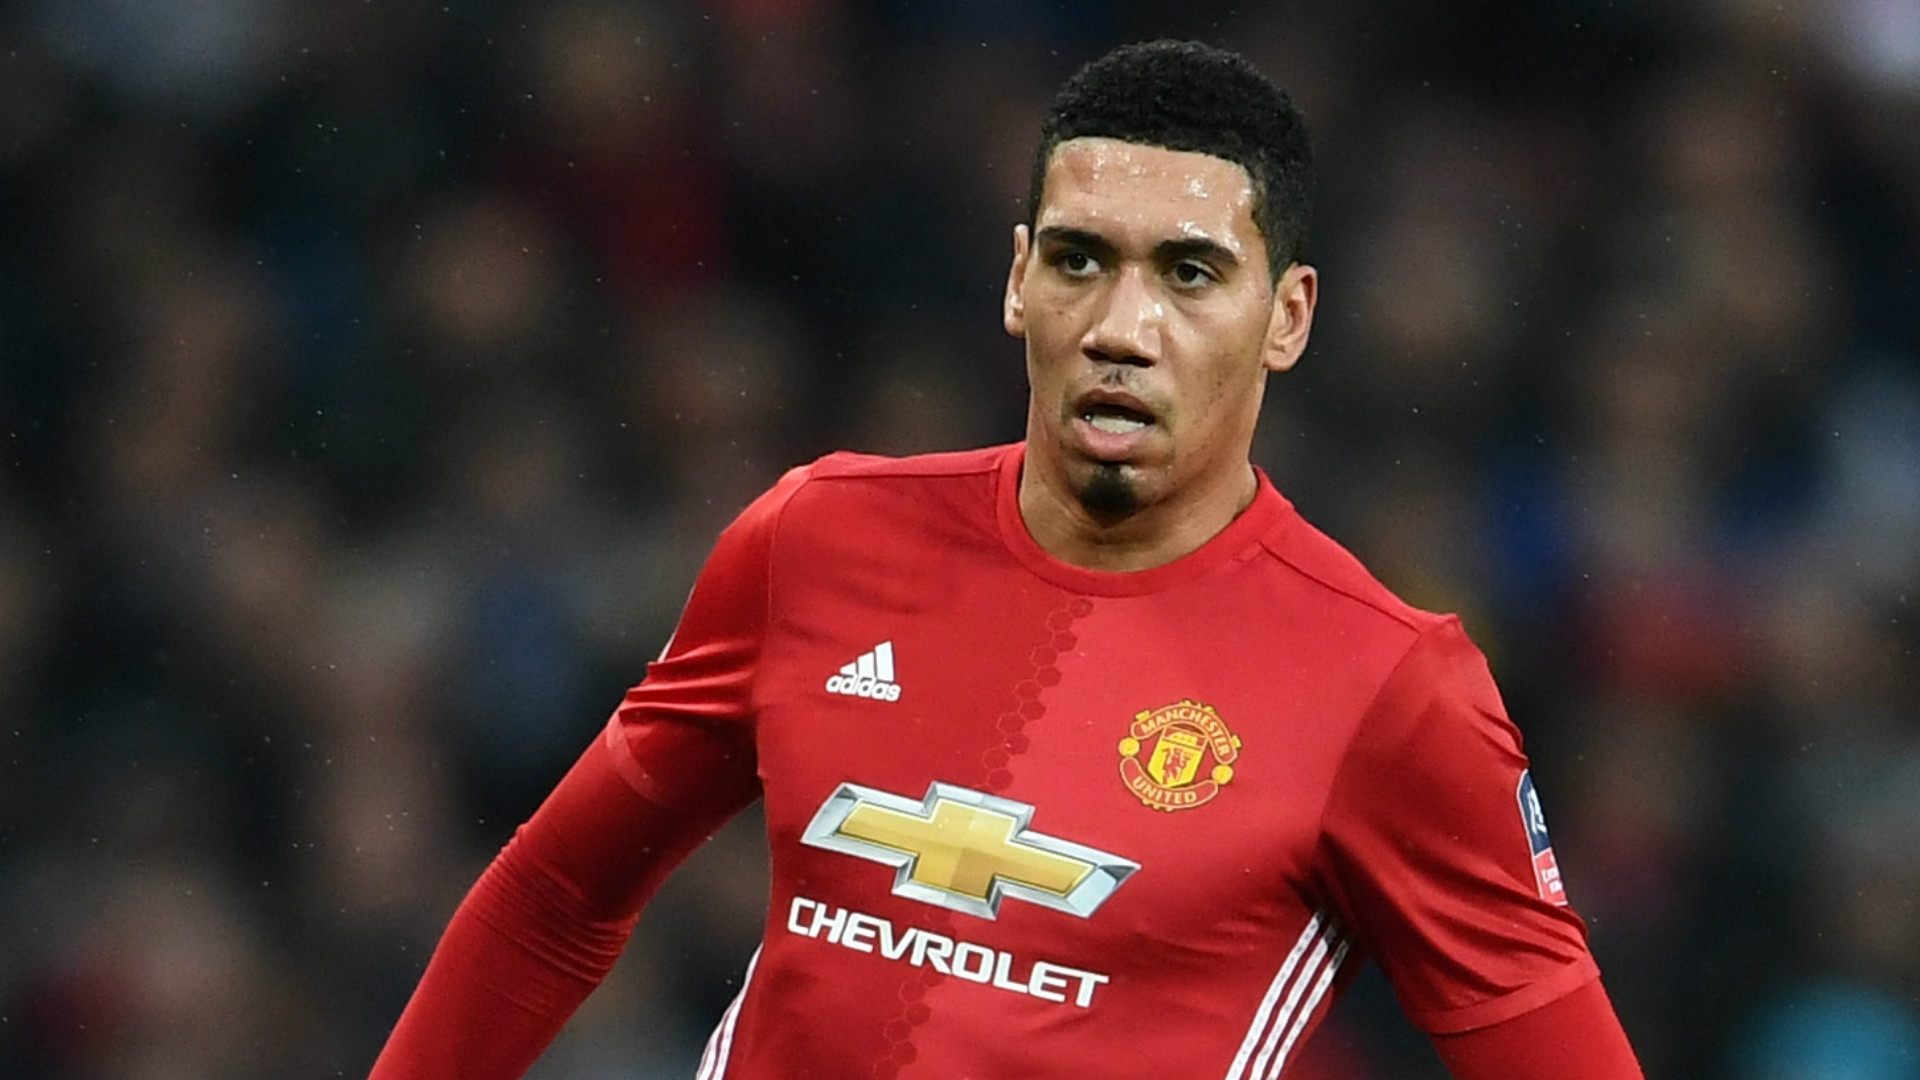 Chris Smalling Man Utd 2017